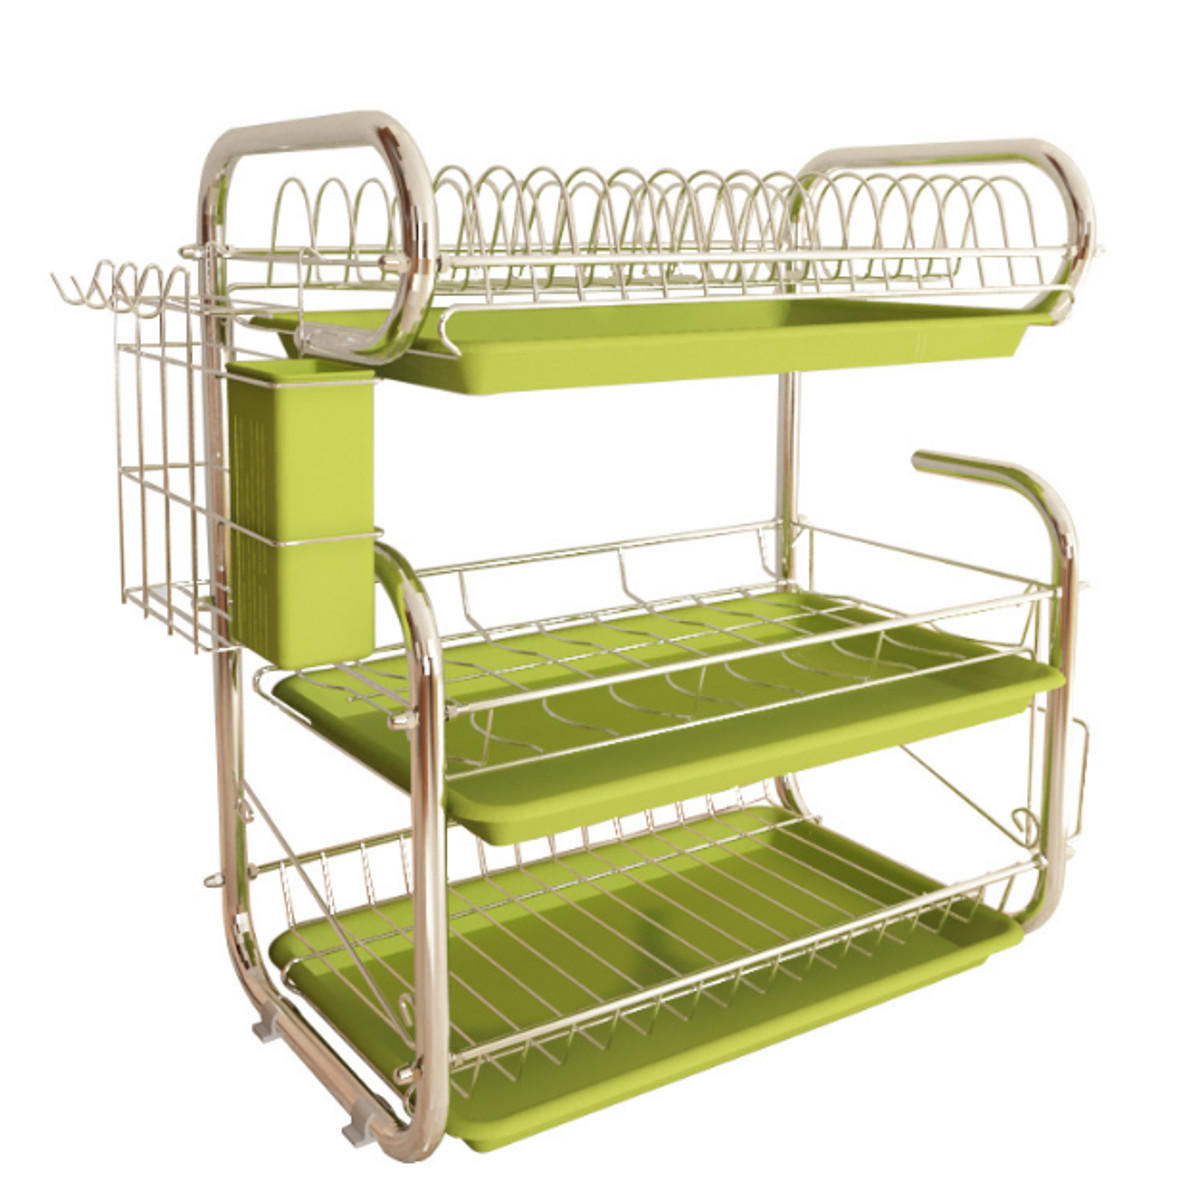 3 Tiers Kitchen Storage Dish Drainer Rack Cutlery Drying Holder Drainer Tray from Banggood